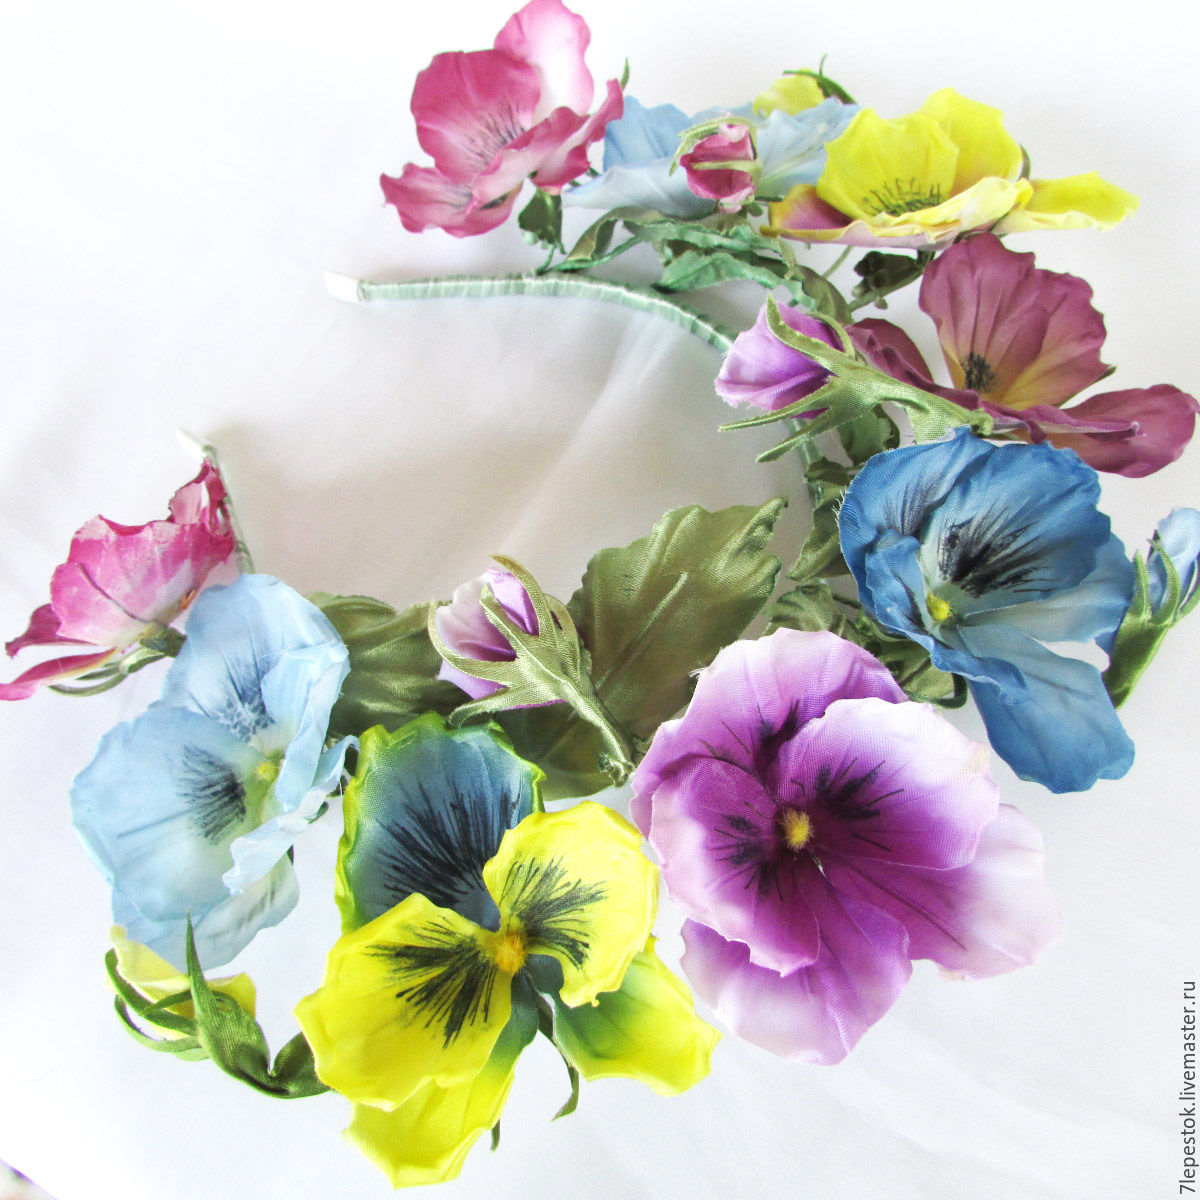 Hair Band Pansies Silk Flowers Shop Online On Livemaster With